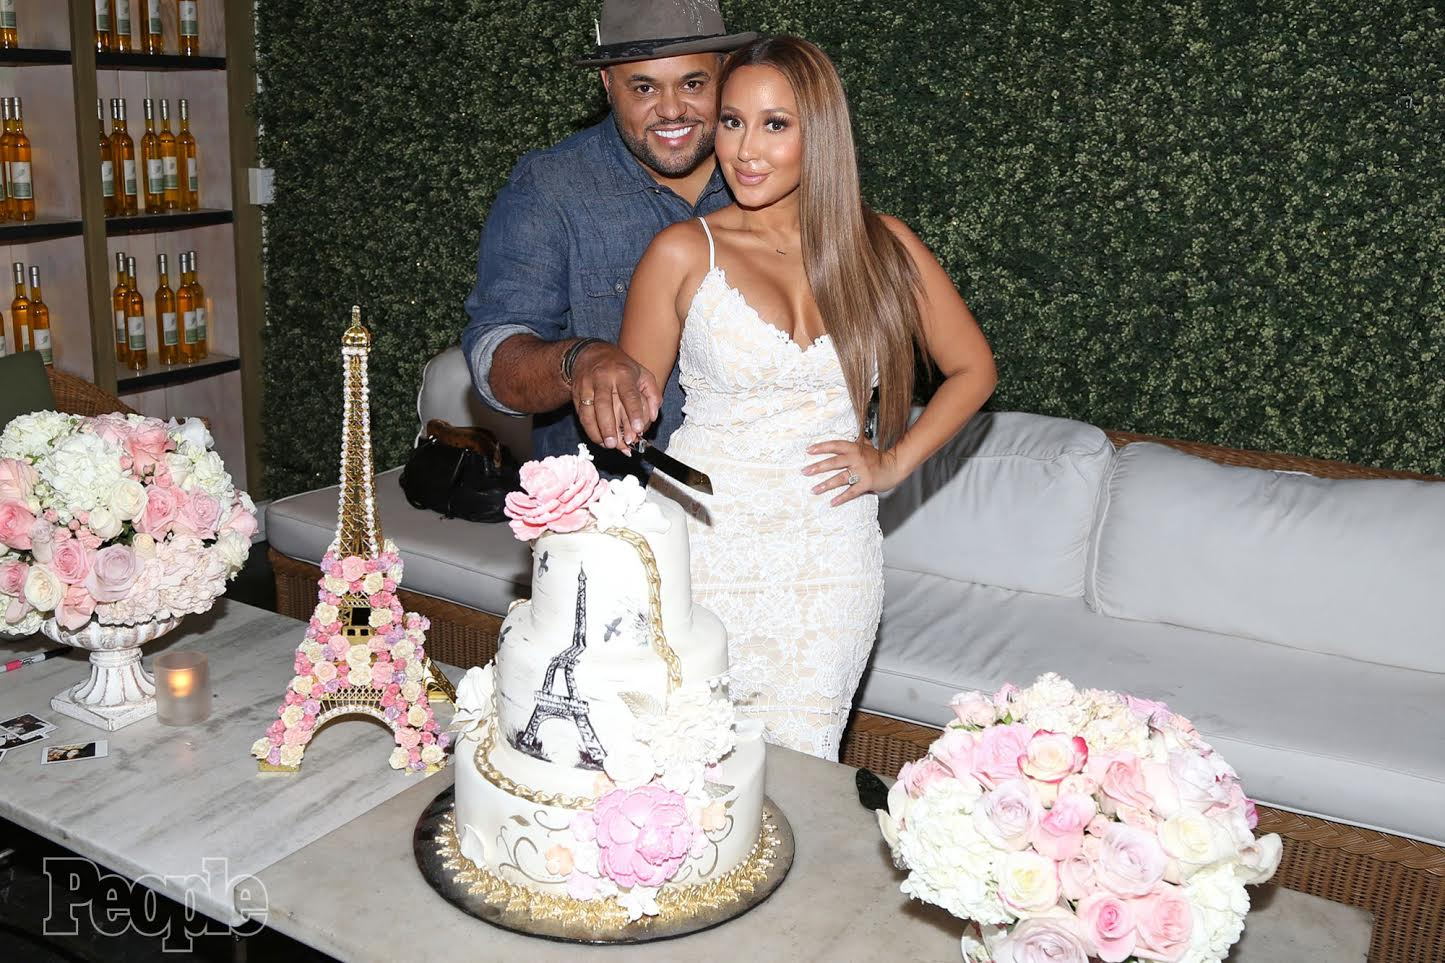 Image result for adrienne Bailon weds gospel singer Israel Houghton